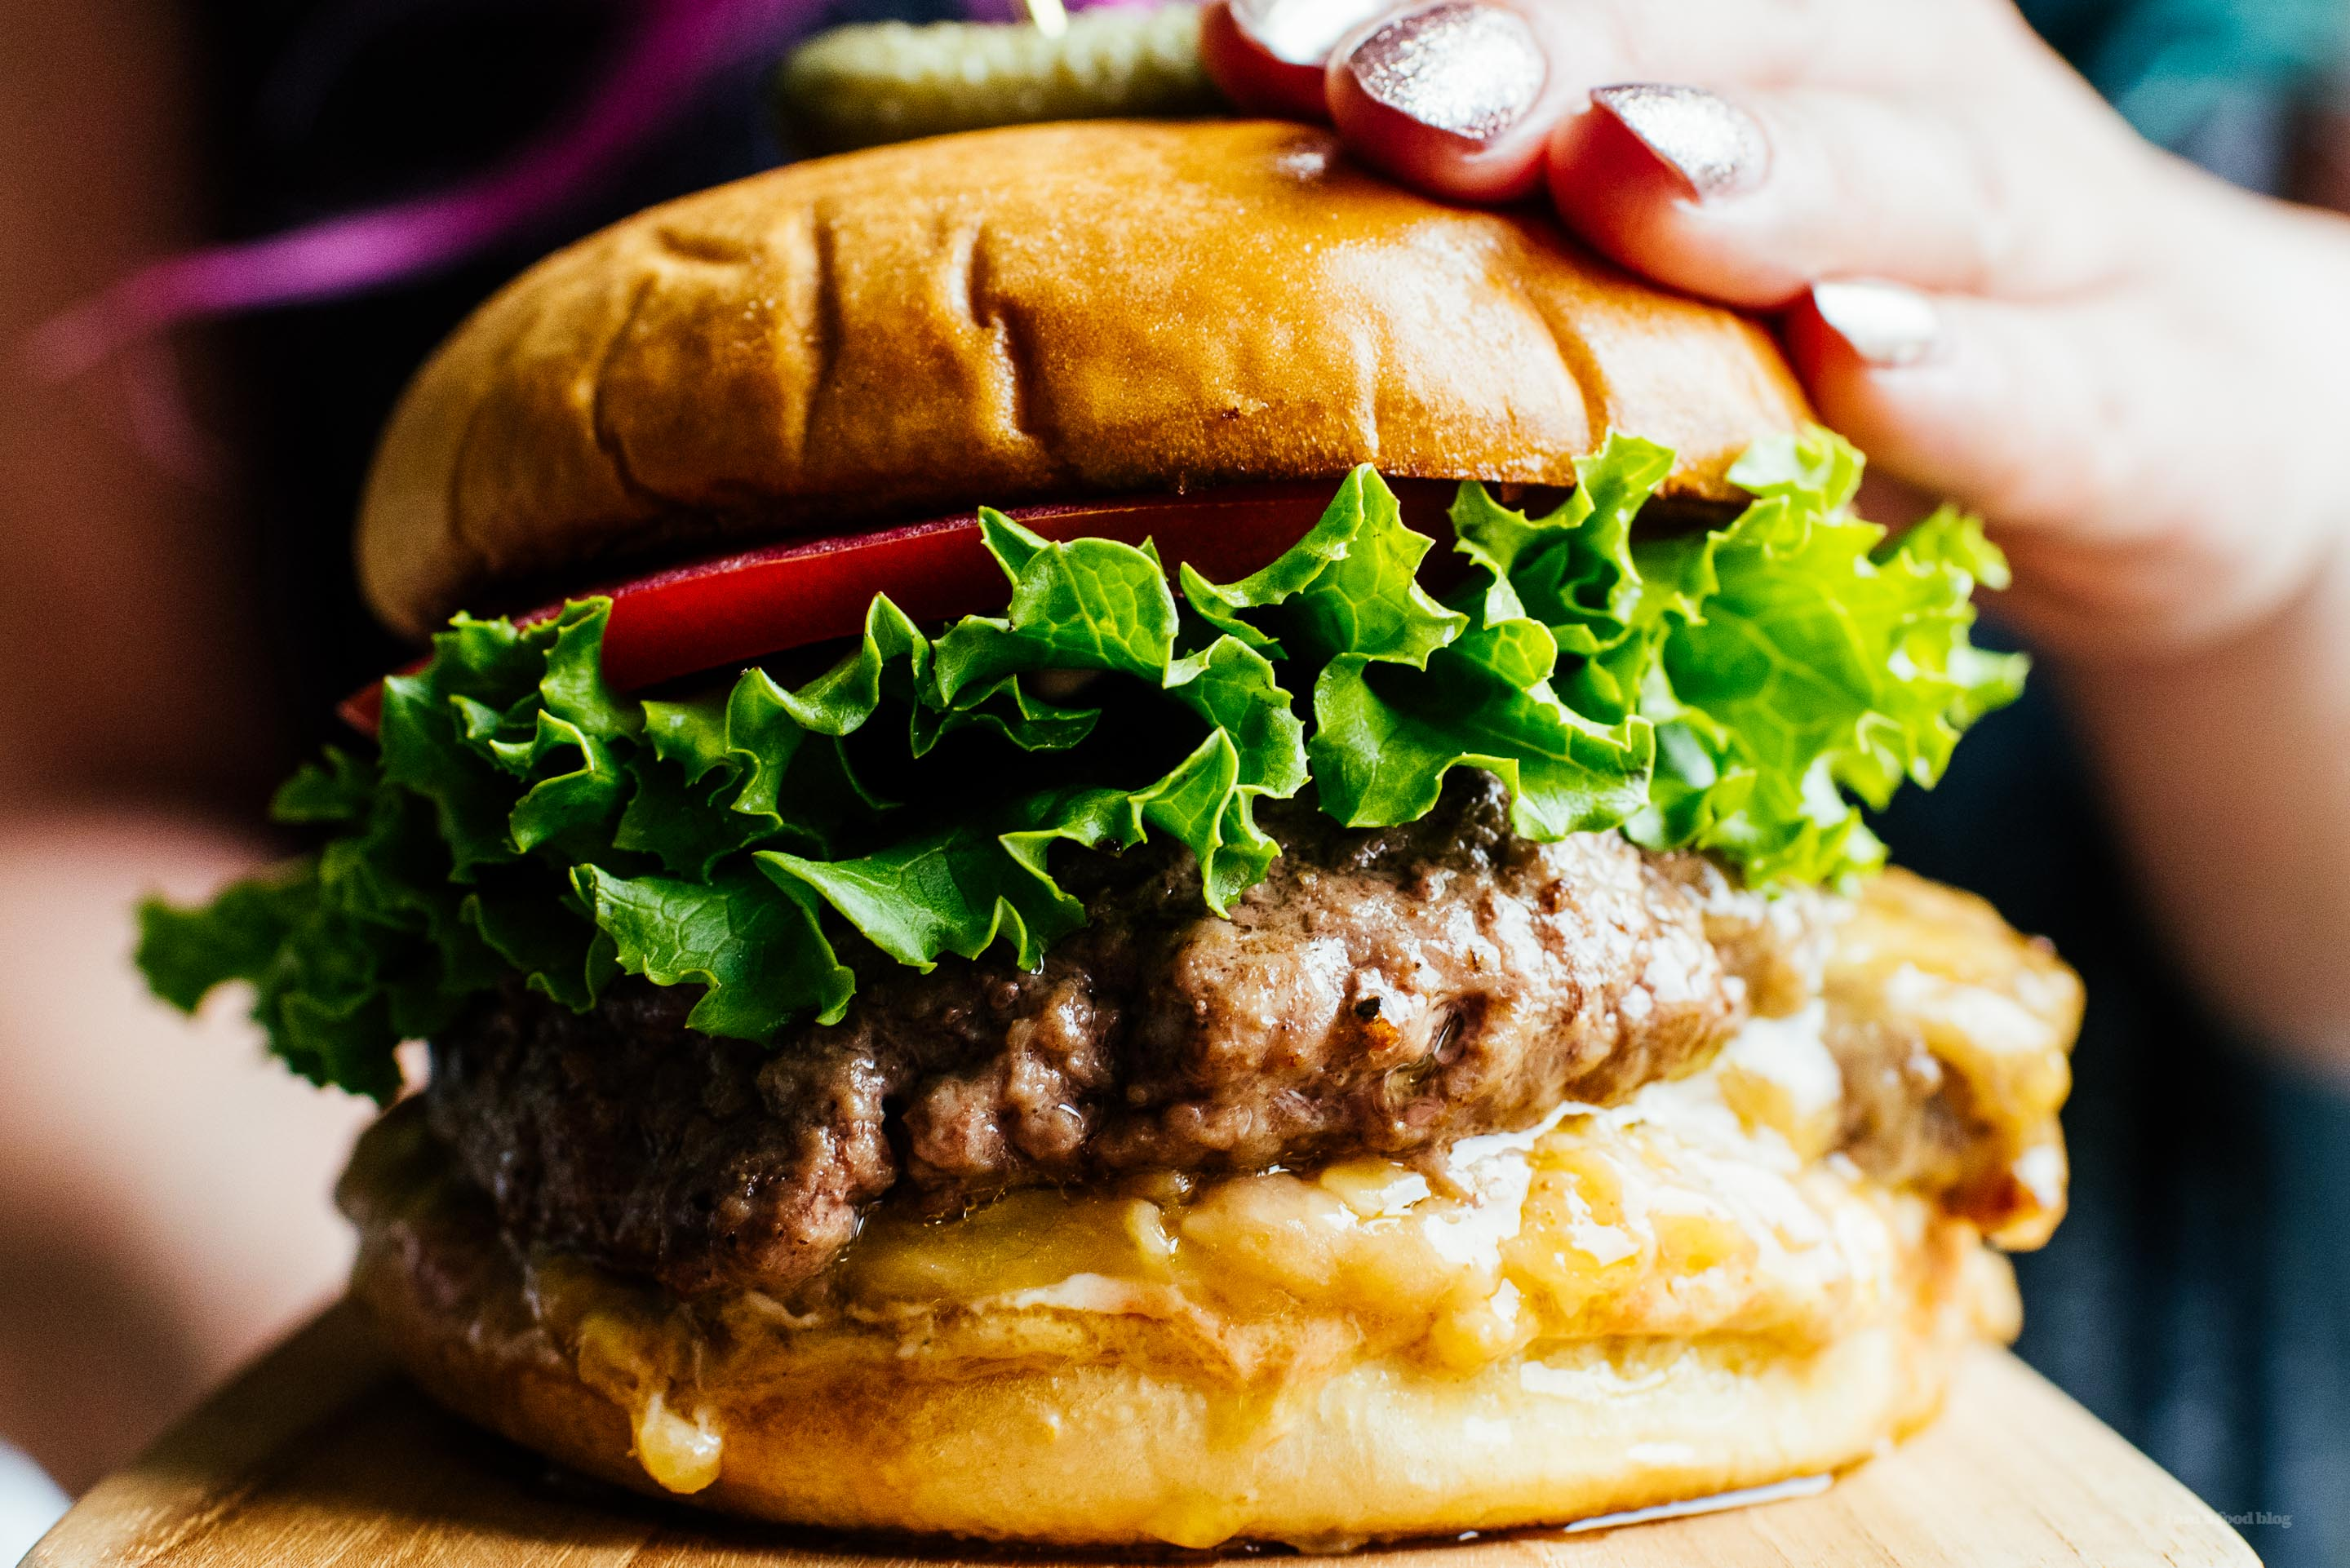 Make the ultimate burger: the juicy lucy. Juicy beef patty stuffed with melty gooey cheese. #burger #recipe #easy #dinner